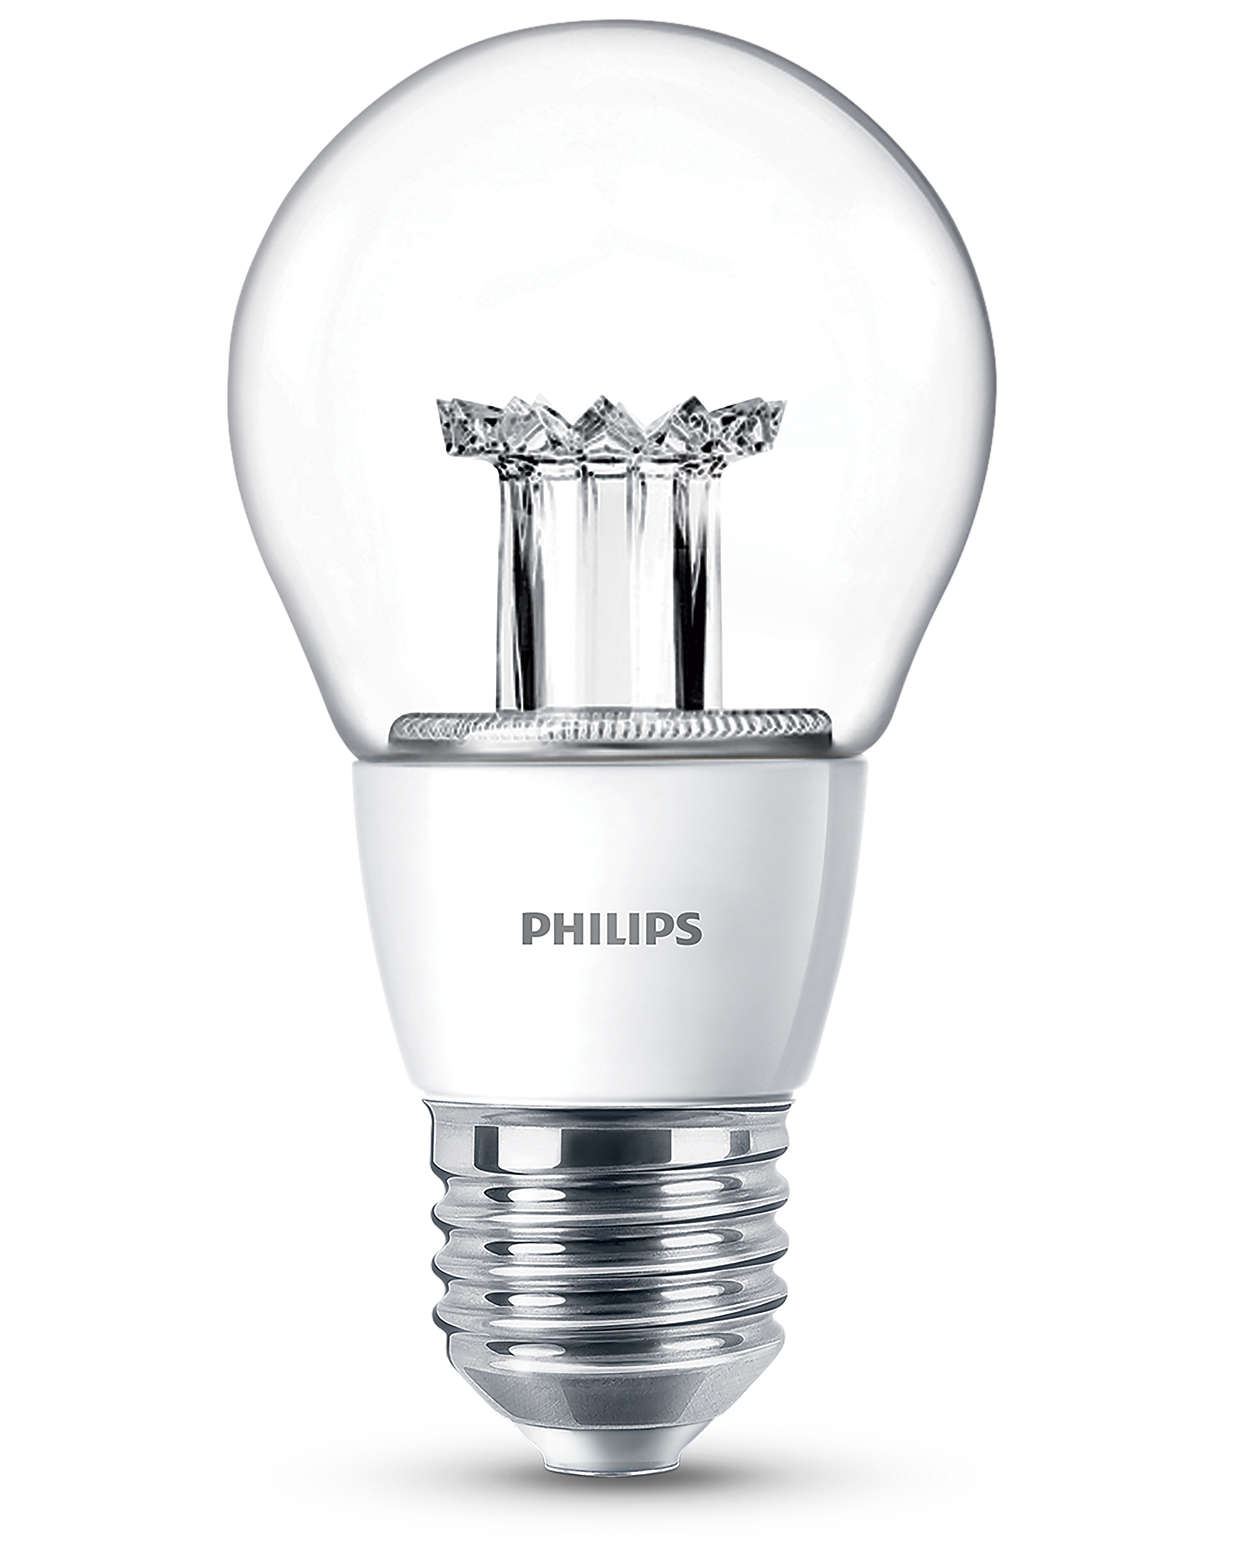 LED Glühlampe (dimmbar) 8718291762461 | Philips